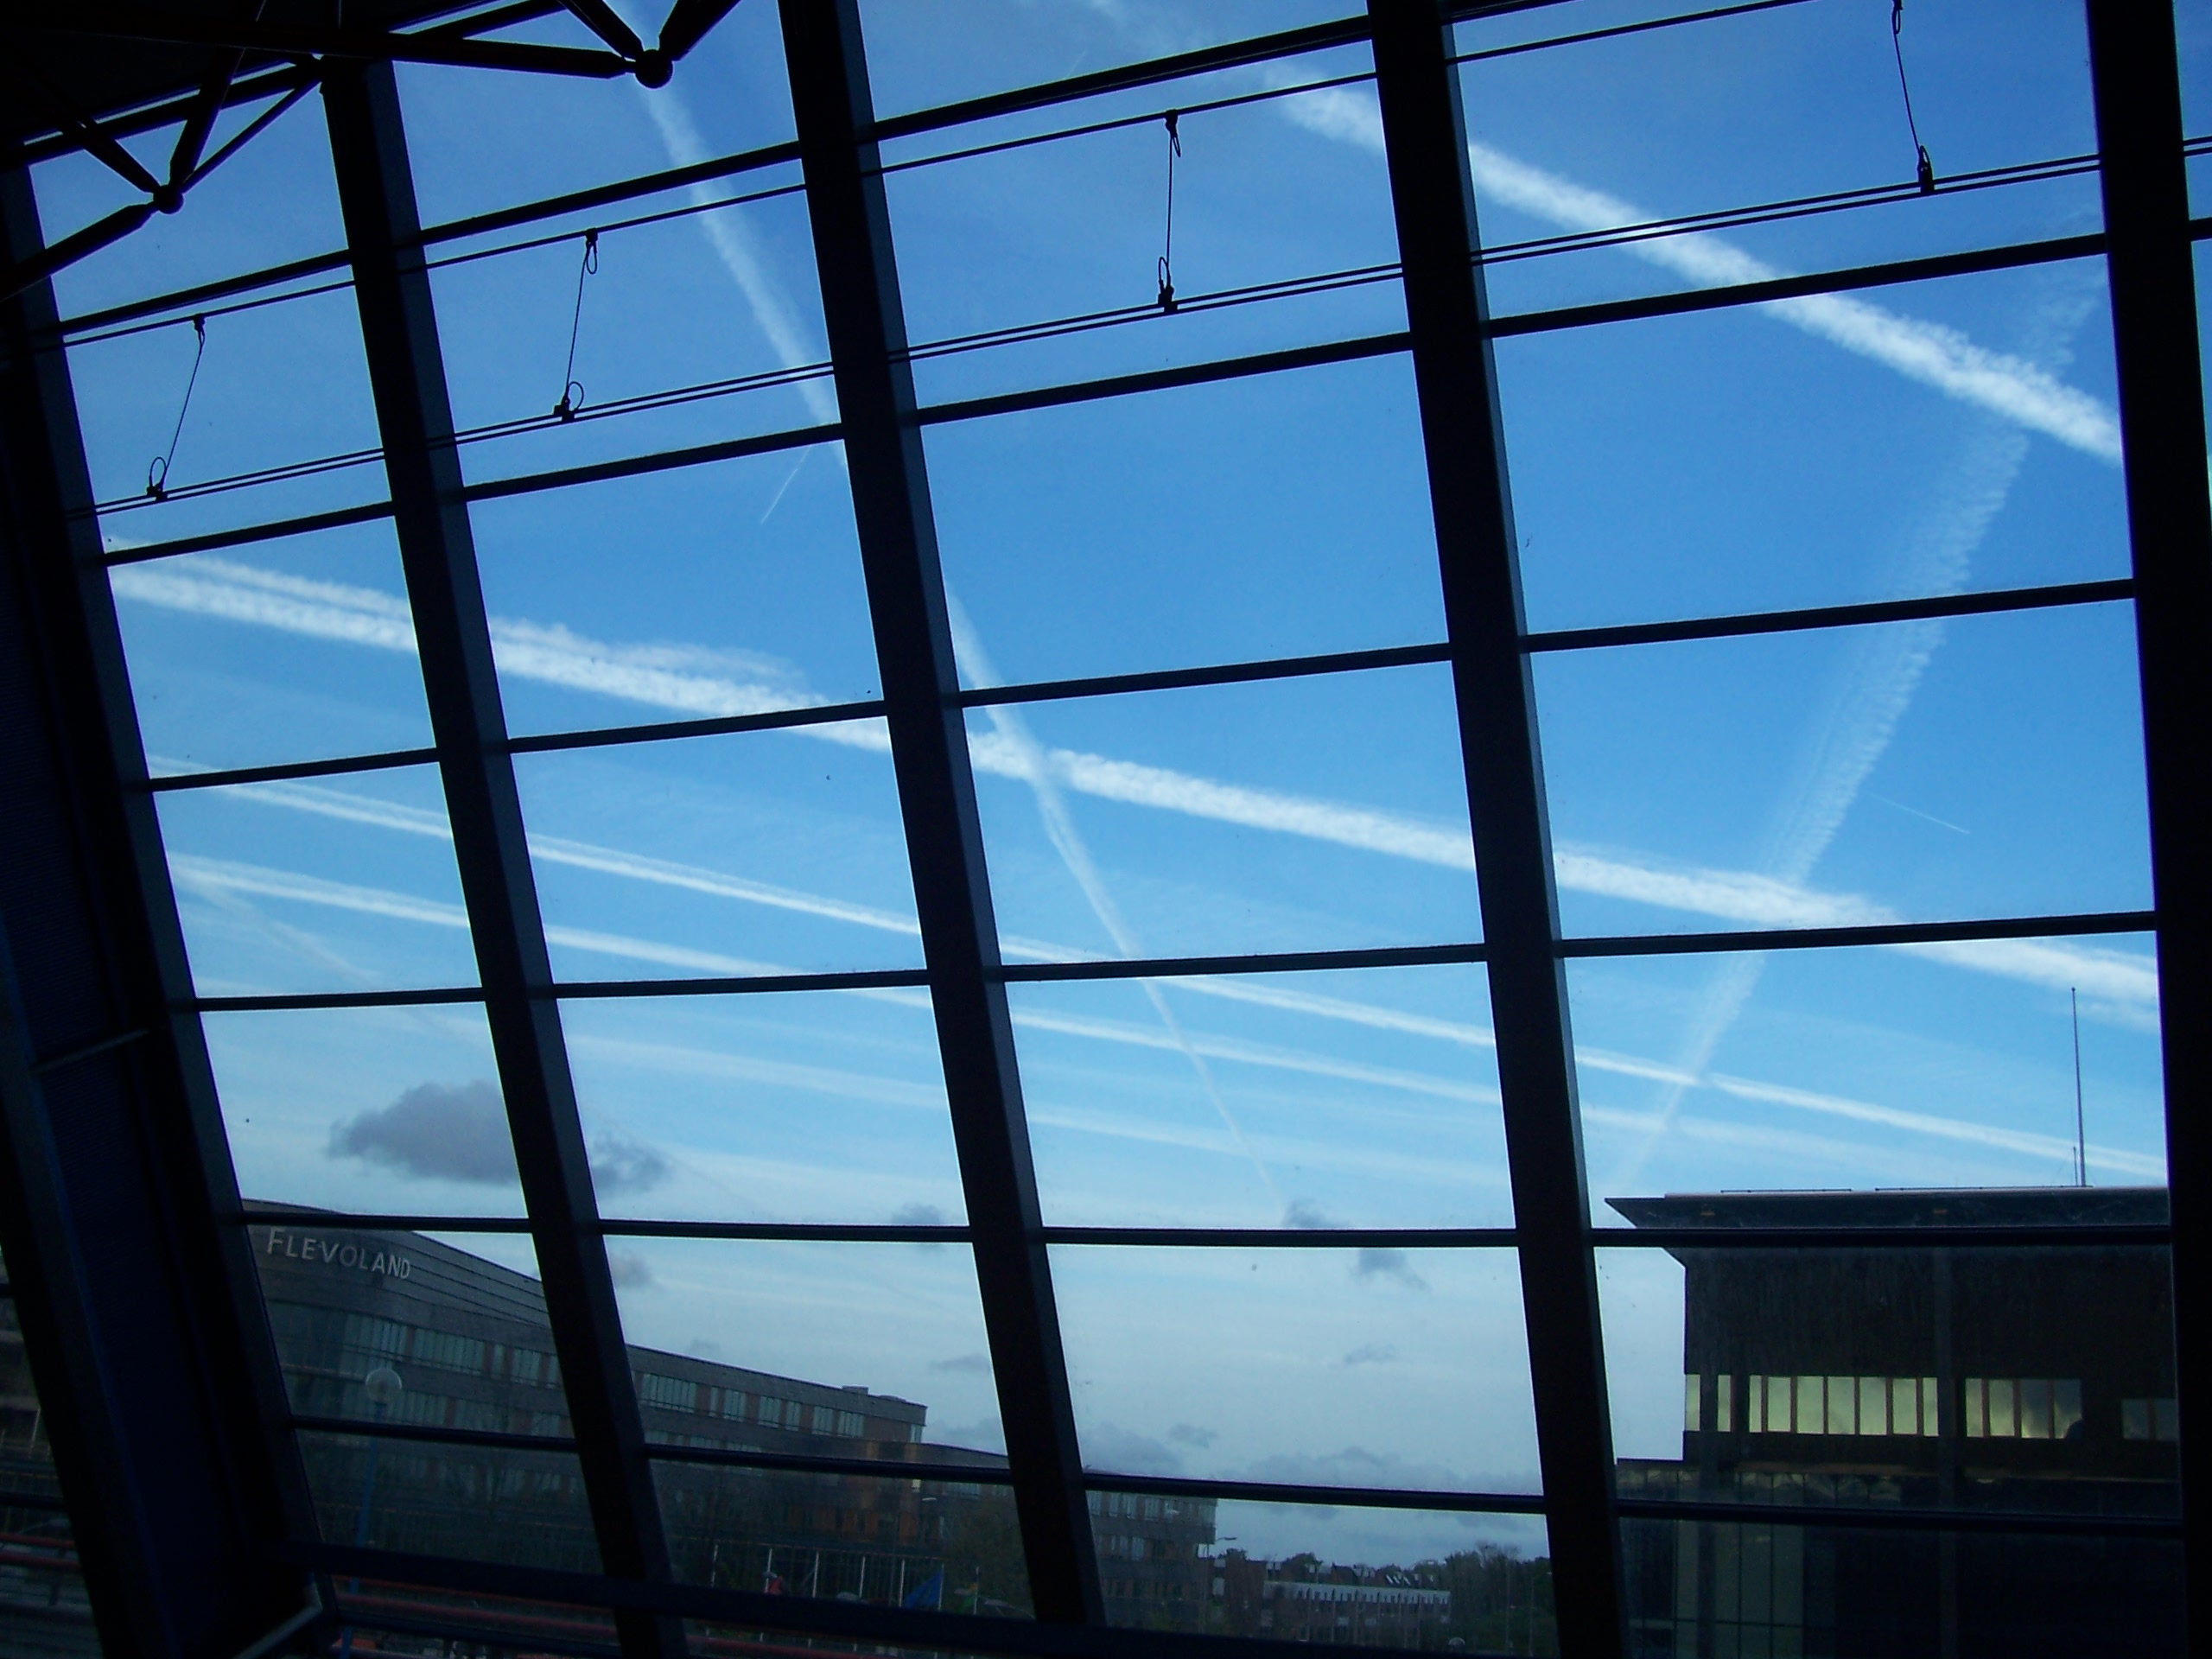 Chemtrails boven station Lelystad 2004 Miep Bos gepubliceerd in de Spits